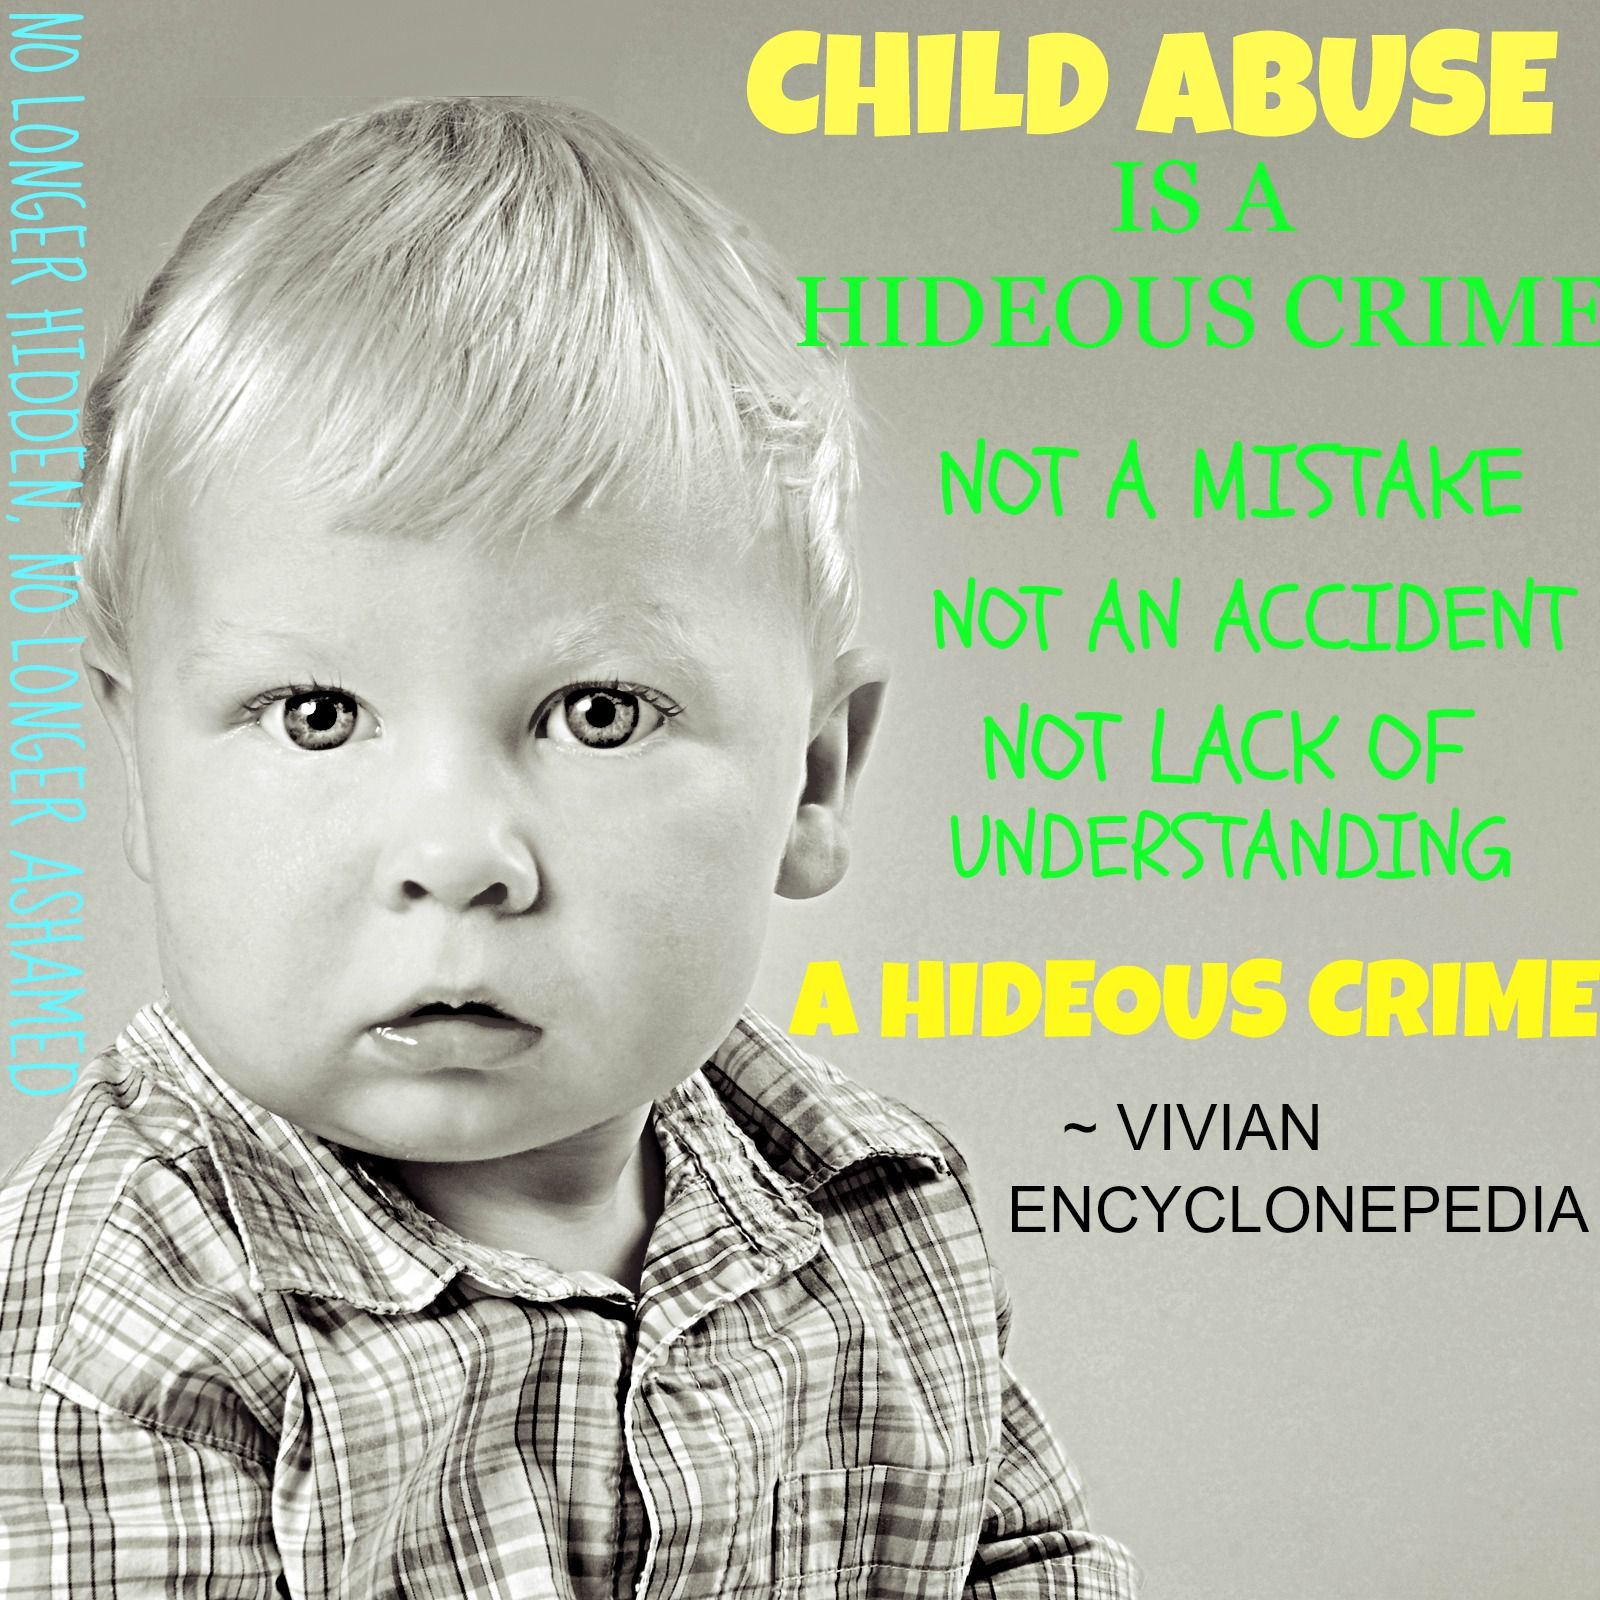 Child Abuse is a hideous crime!